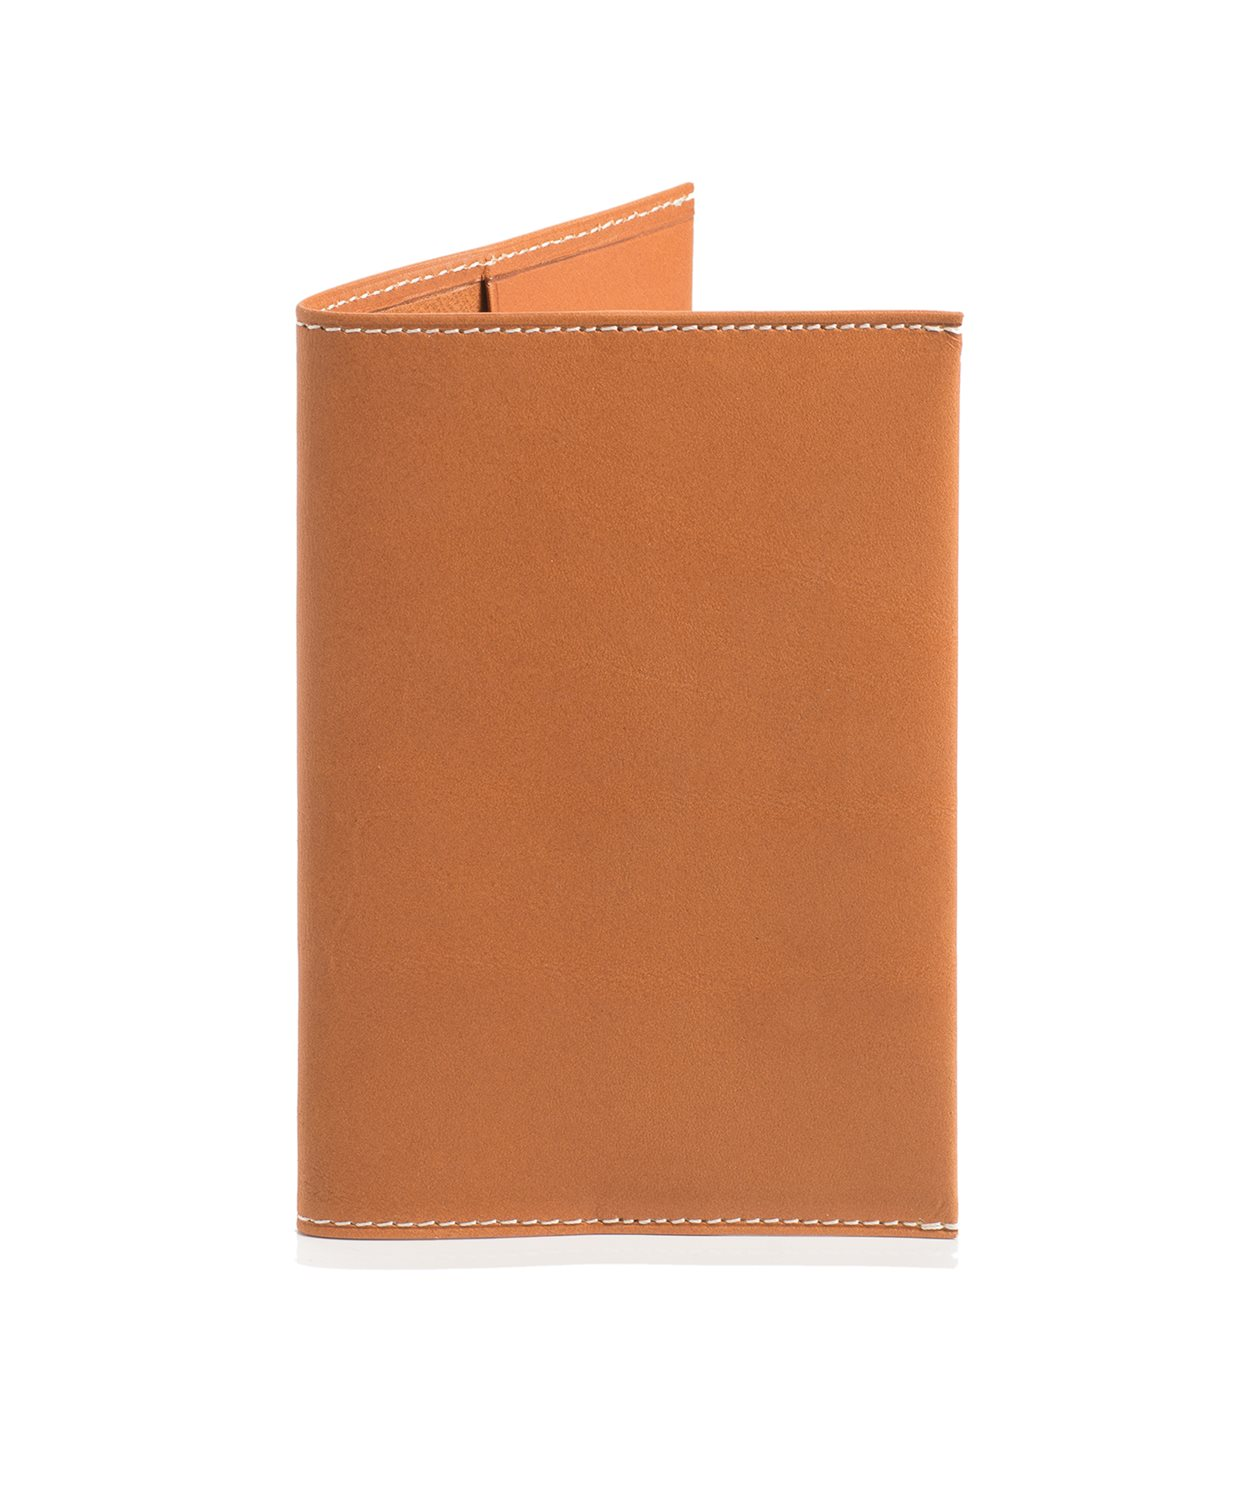 Palmgrens - Passfodral Natur - Genuine handcrafted leather since 1896 8ddb03a6d2a79